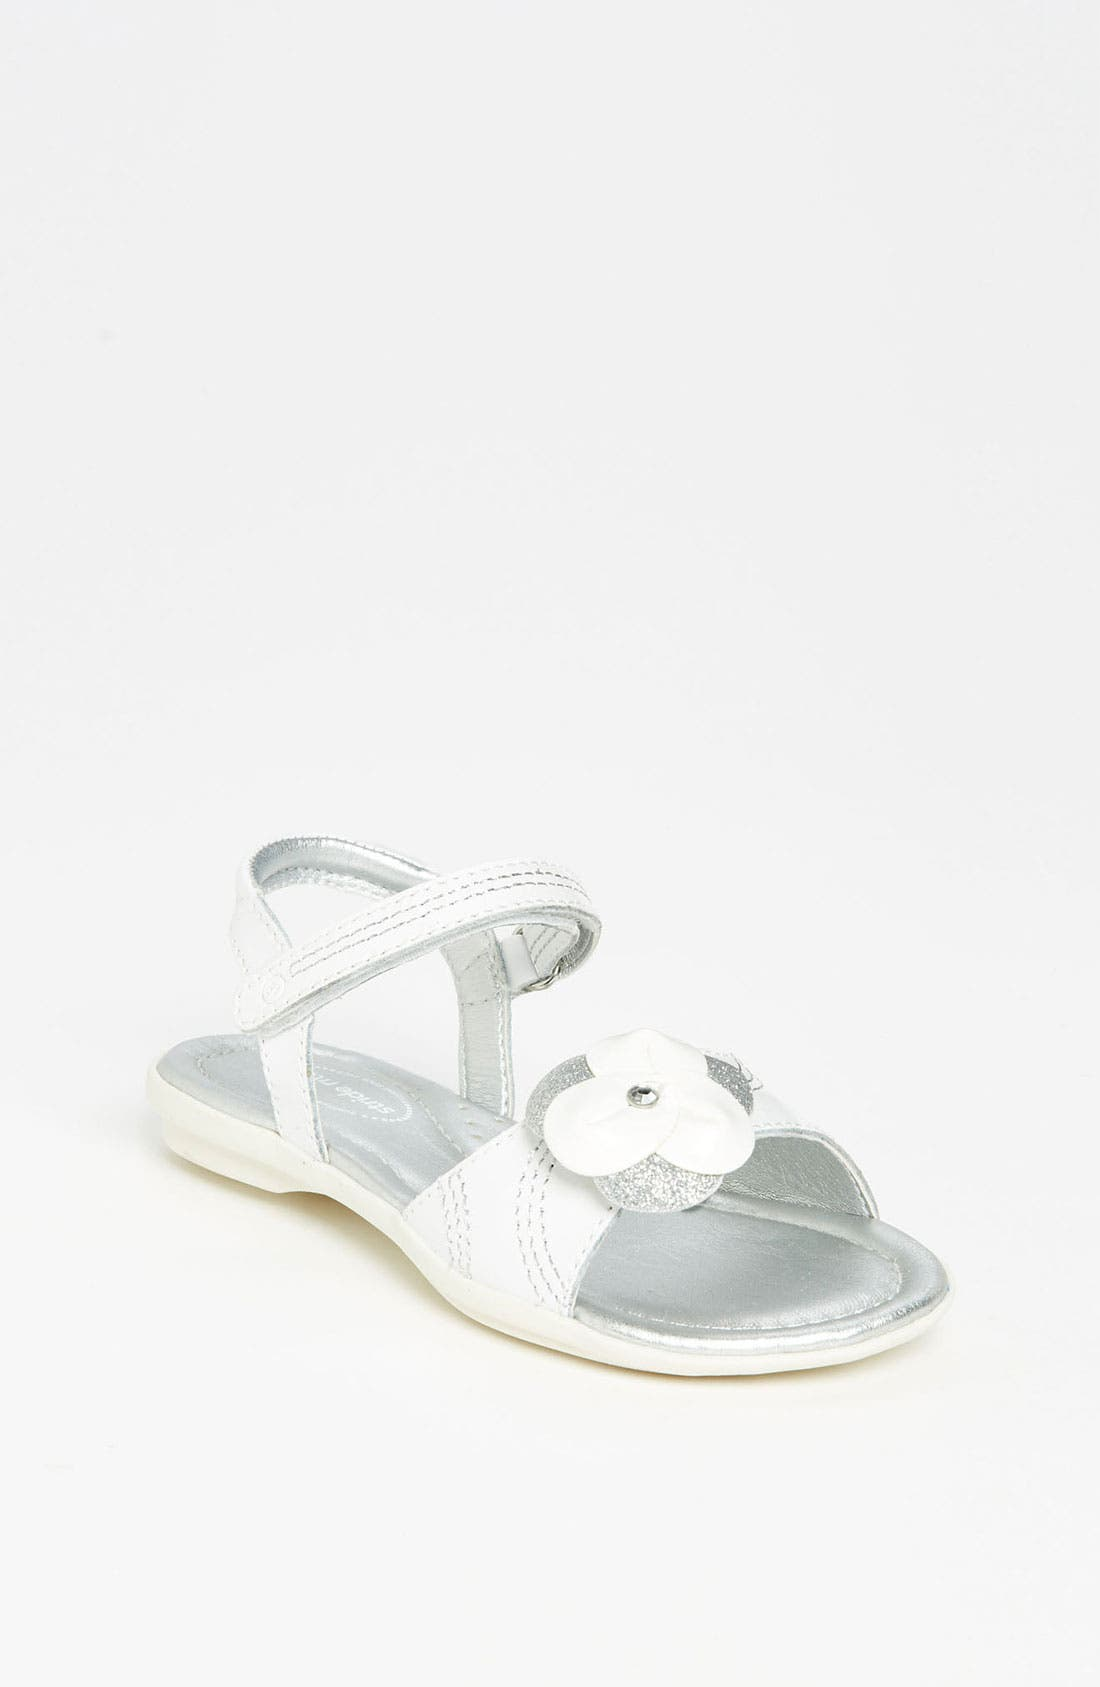 Main Image - Stride Rite 'Laverne' Sandal (Toddler & Little Kid)